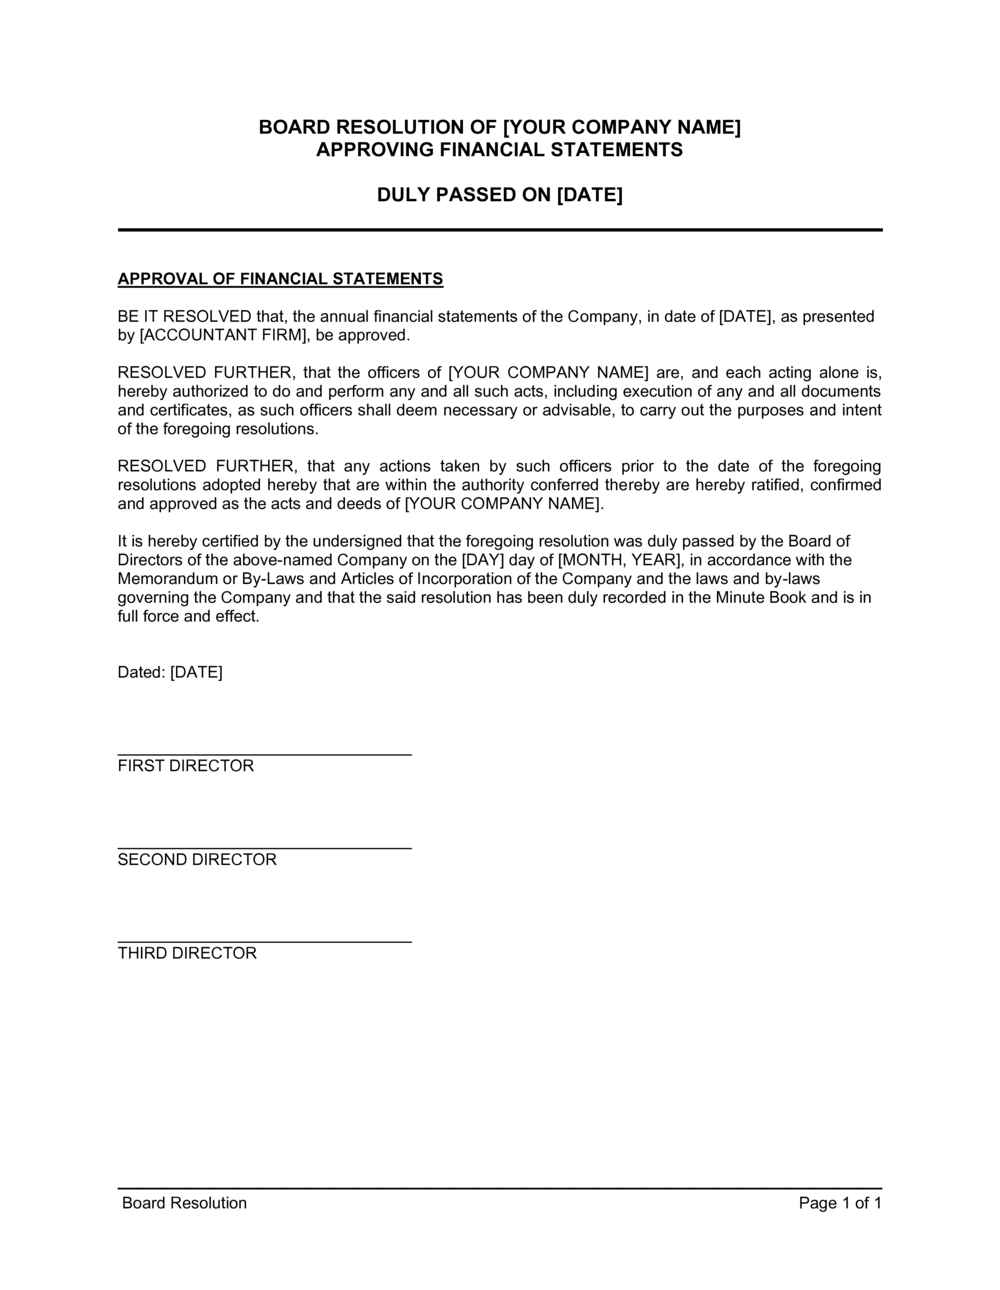 Business-in-a-Box's Board Resolution Approving Financial Statements Template